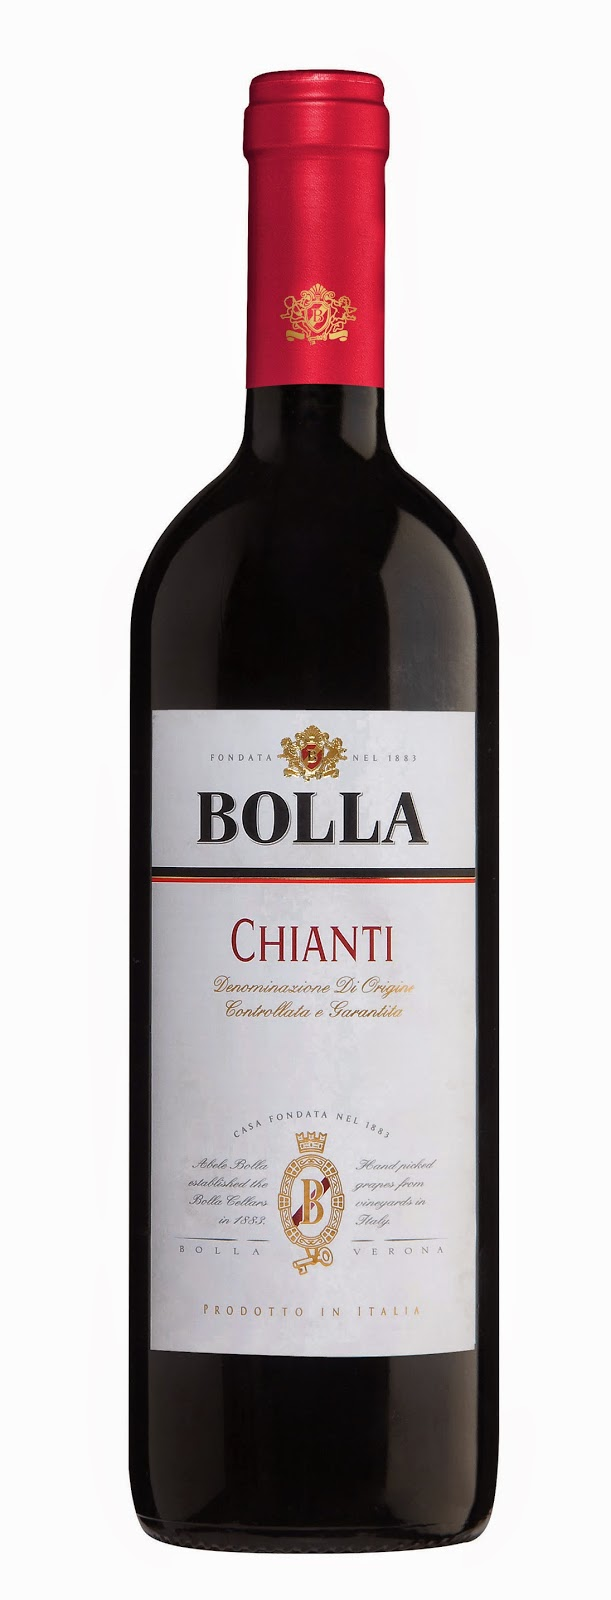 bottle of Bolla Chianti